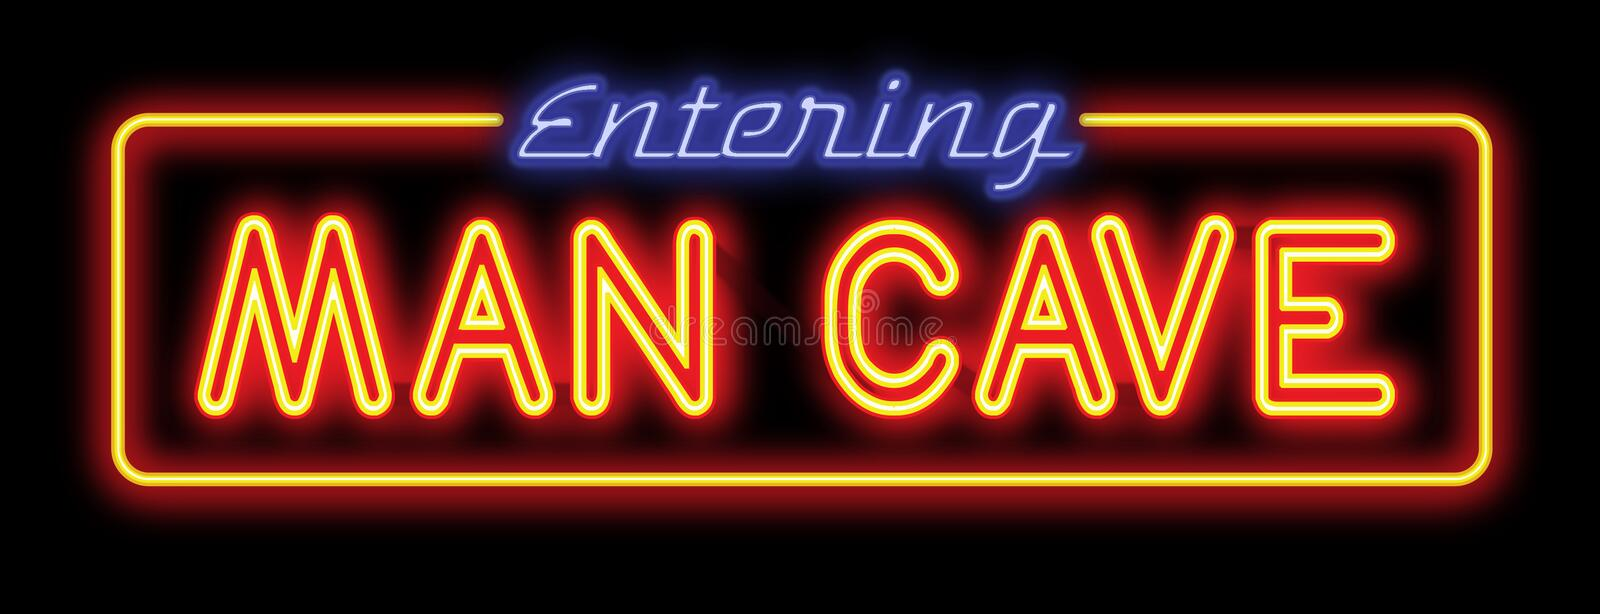 Man Cave Neon Sign. Entering Mens Room glow red yellow blue isolated fun party beer royalty free illustration